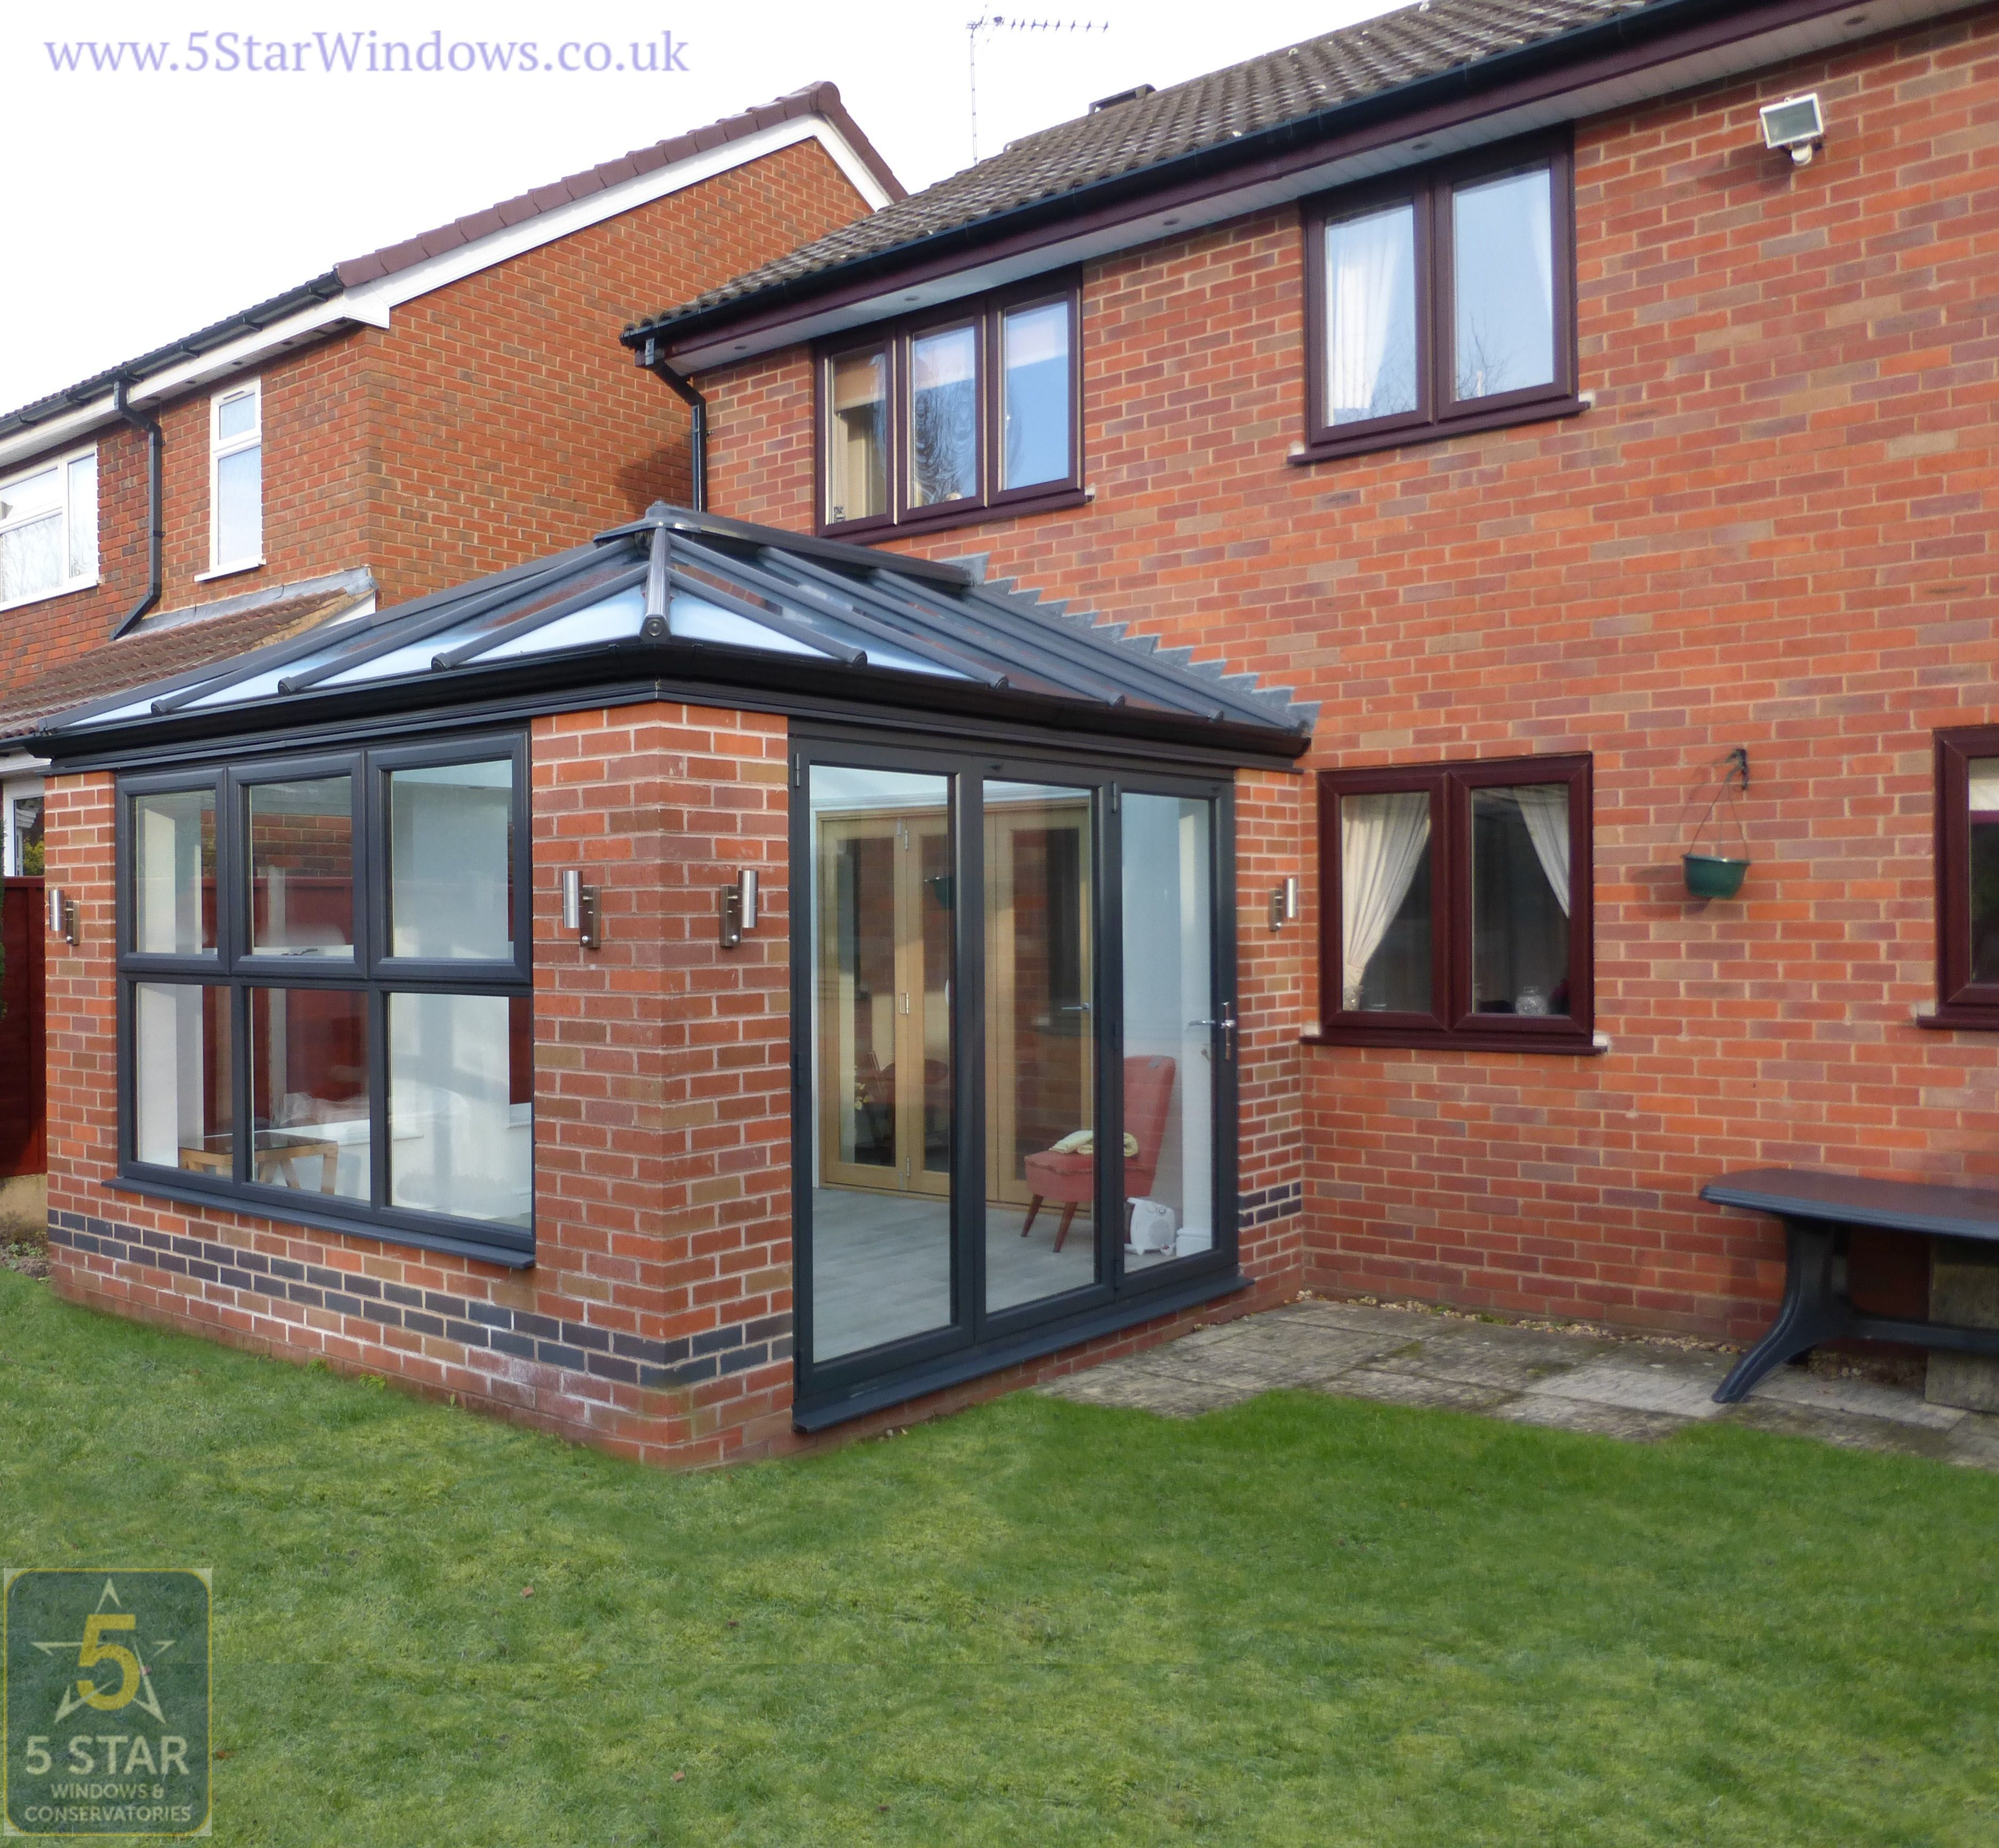 Edwardian Style Conservatory In Anthracite Grey Ral 7016